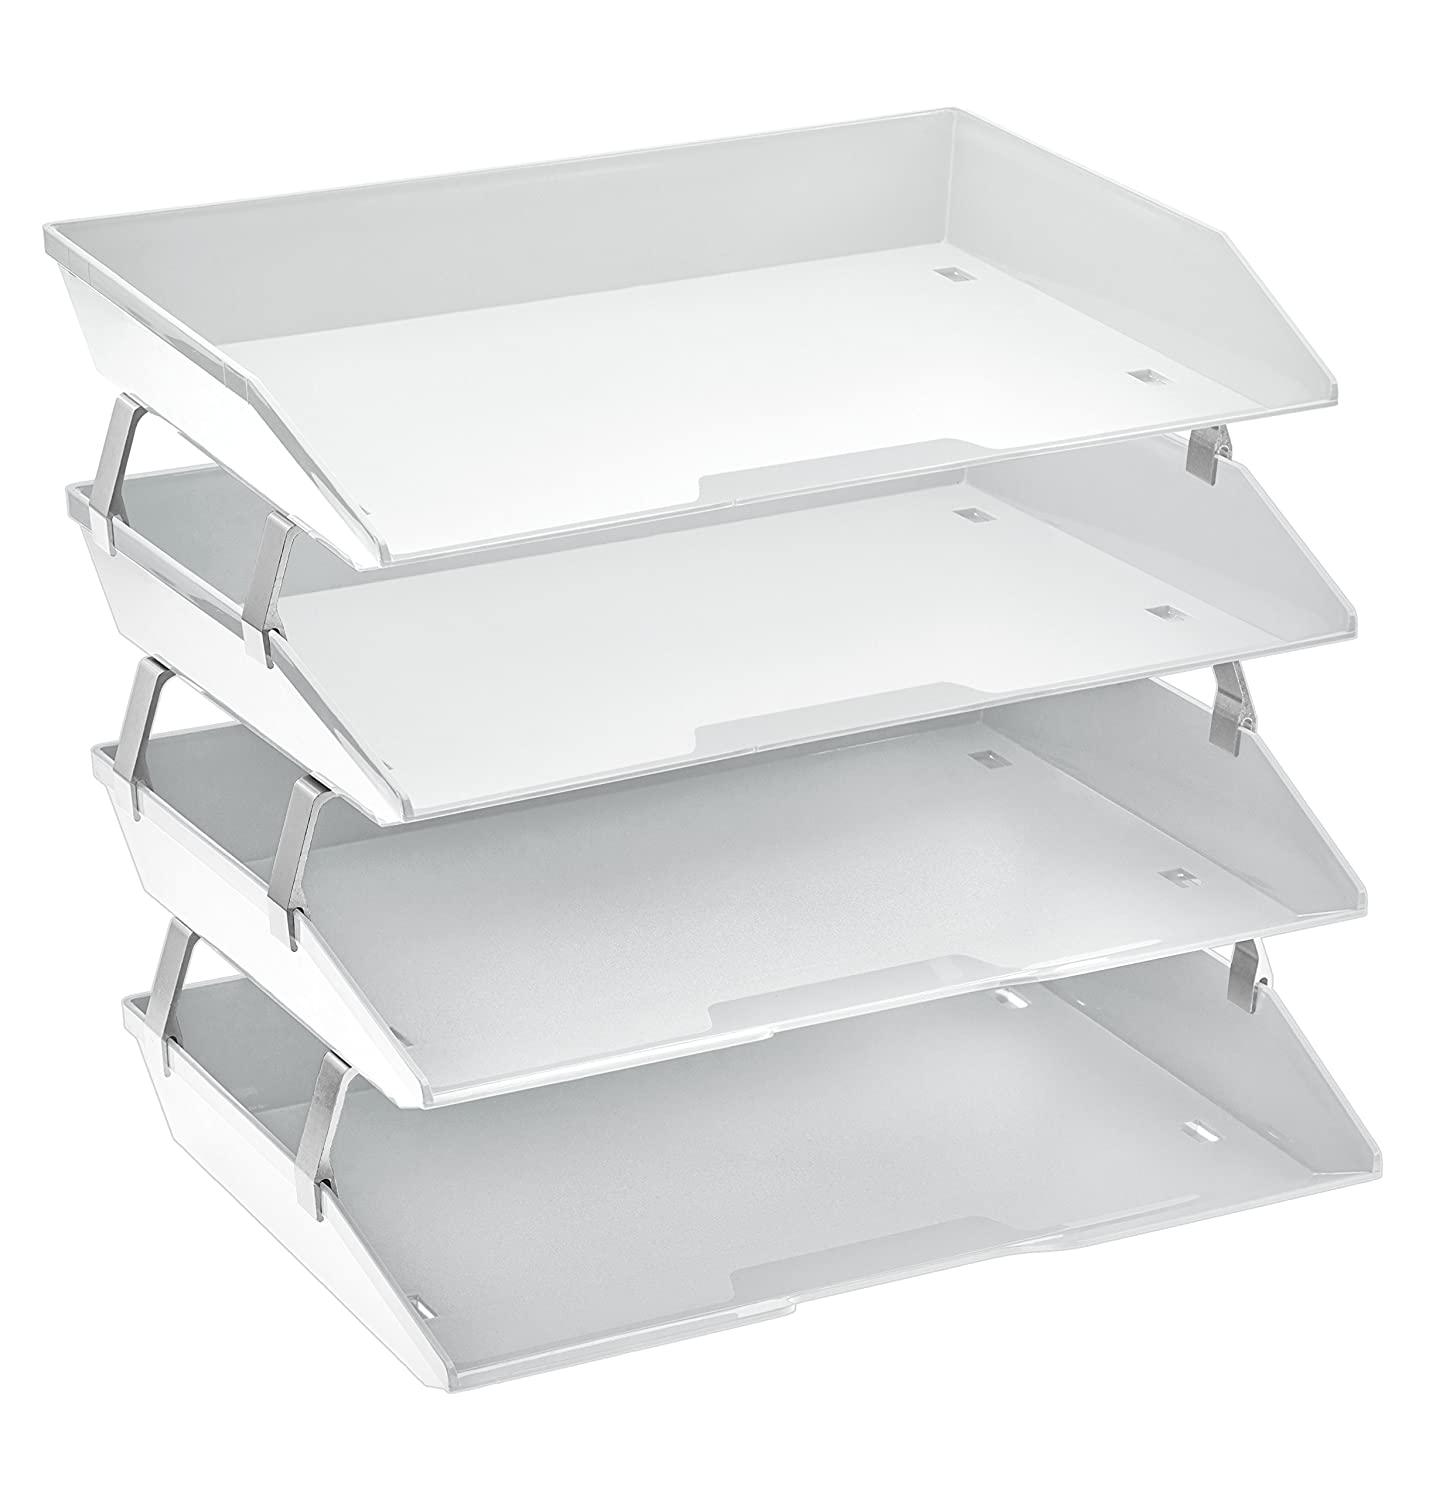 Acrimet Facility 4 Tier Letter Tray Side Load Plastic Desktop File Organizer (White Color)